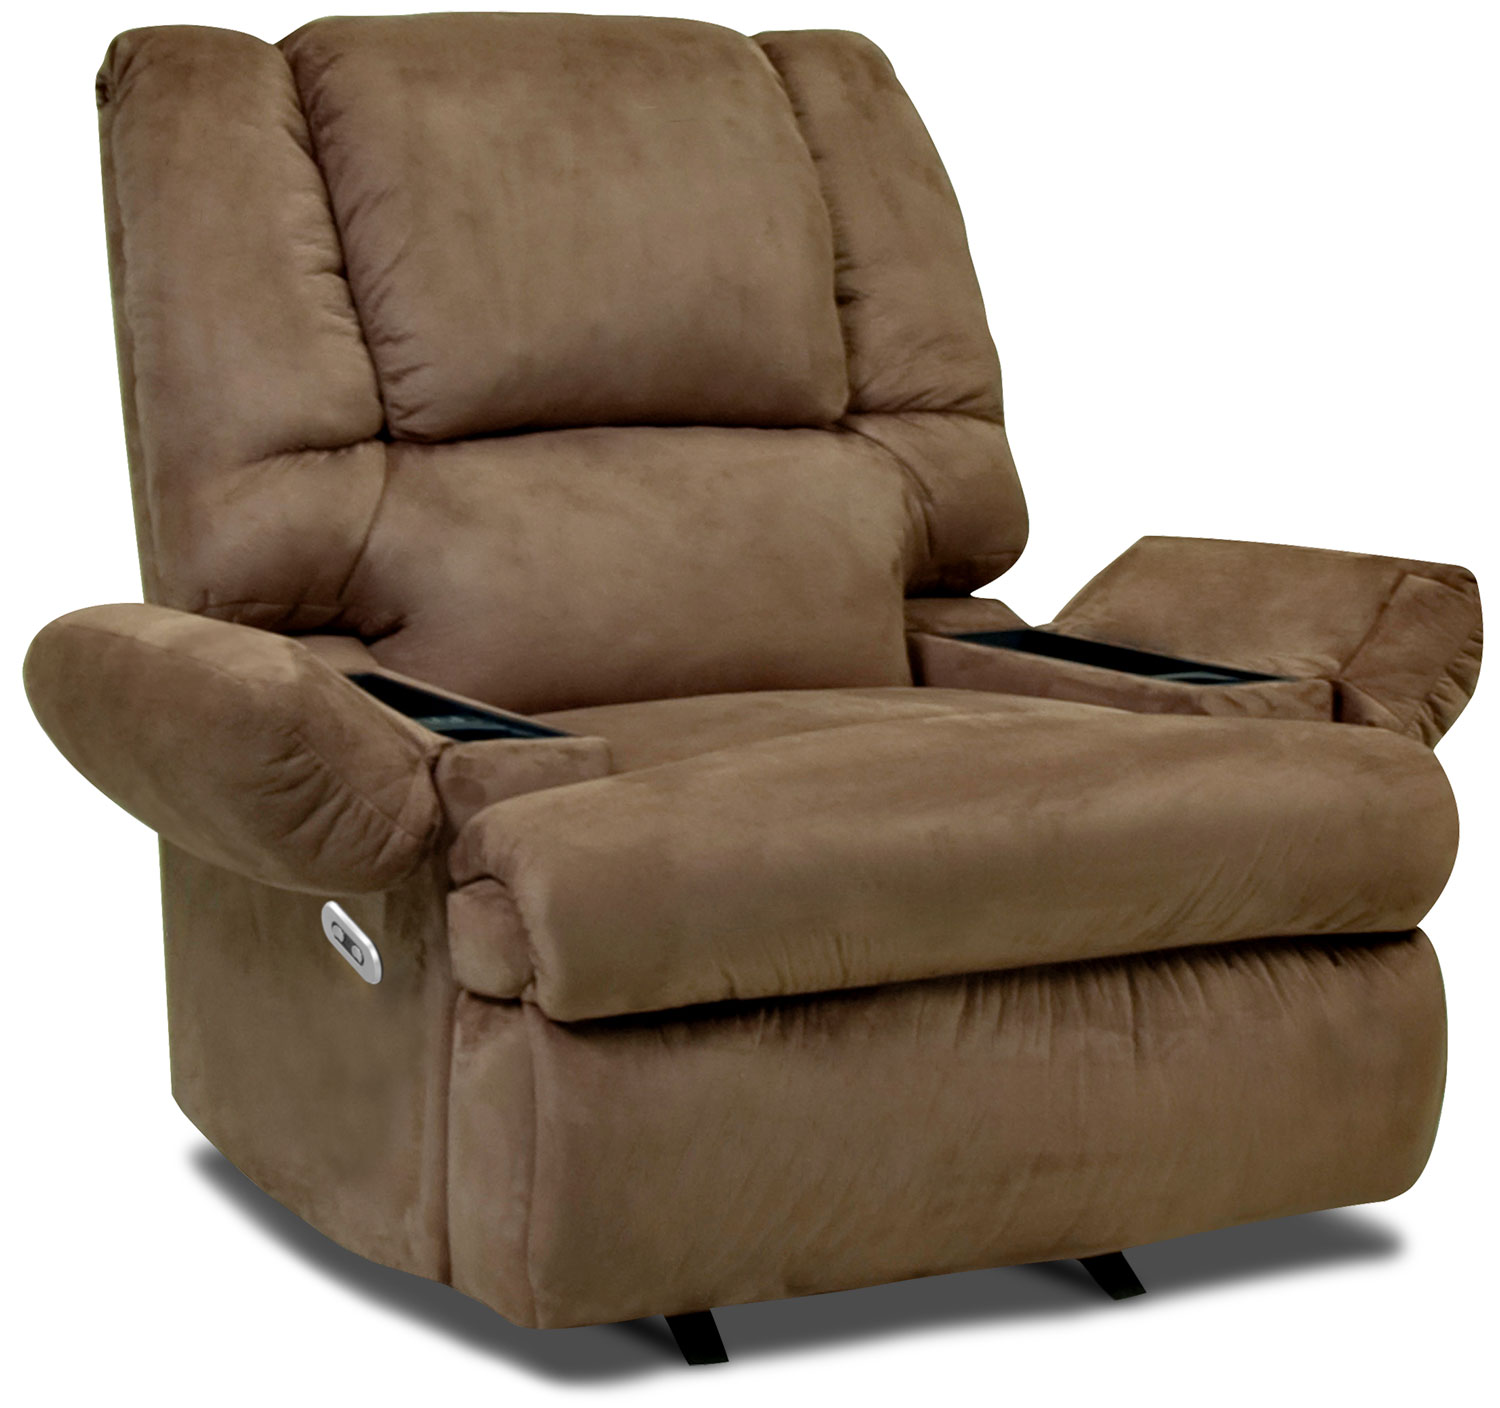 Designed2B 5598 Padded Suede Power Recliner with Massage and Storage - Mocha